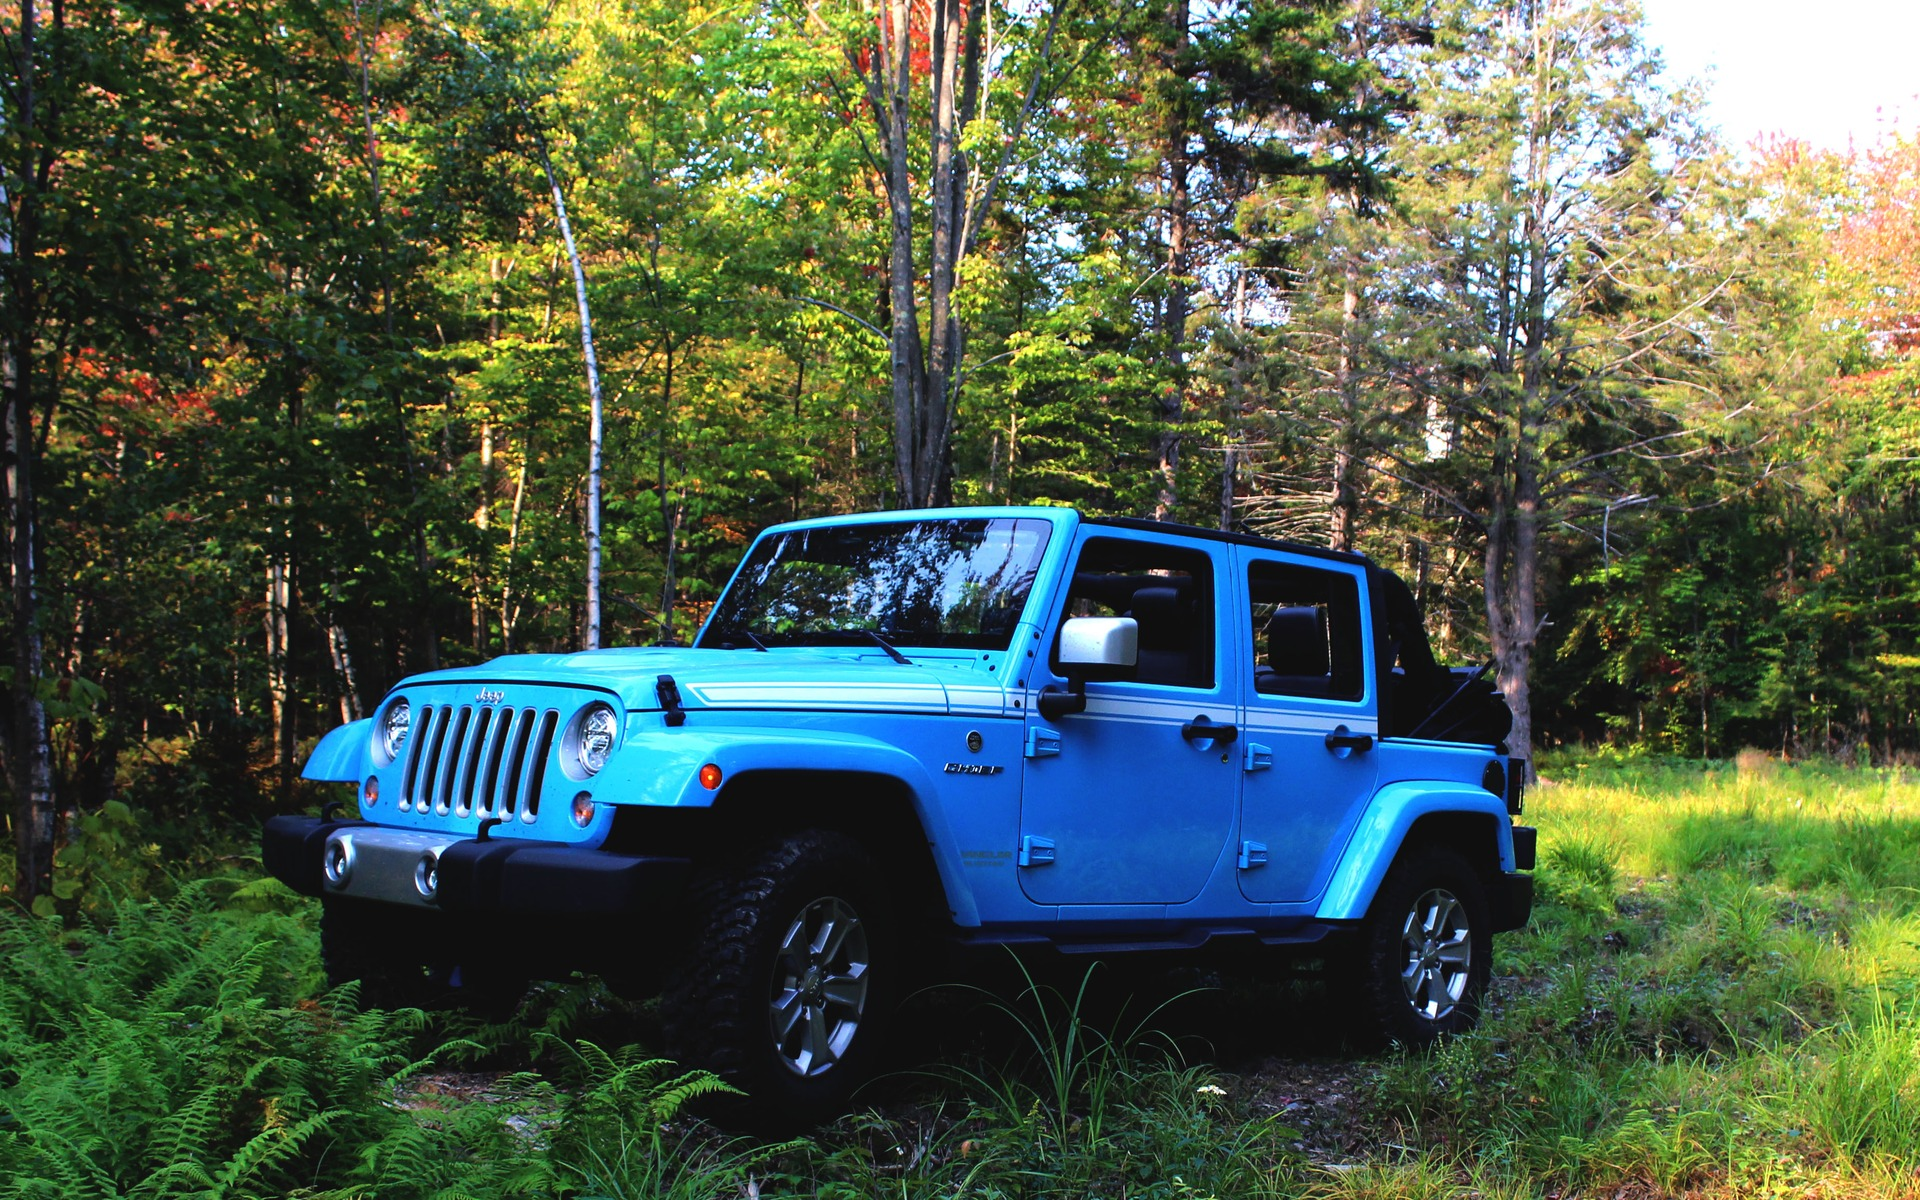 2017 Jeep Wrangler Chief Edition Saying Goodbye to the JK with